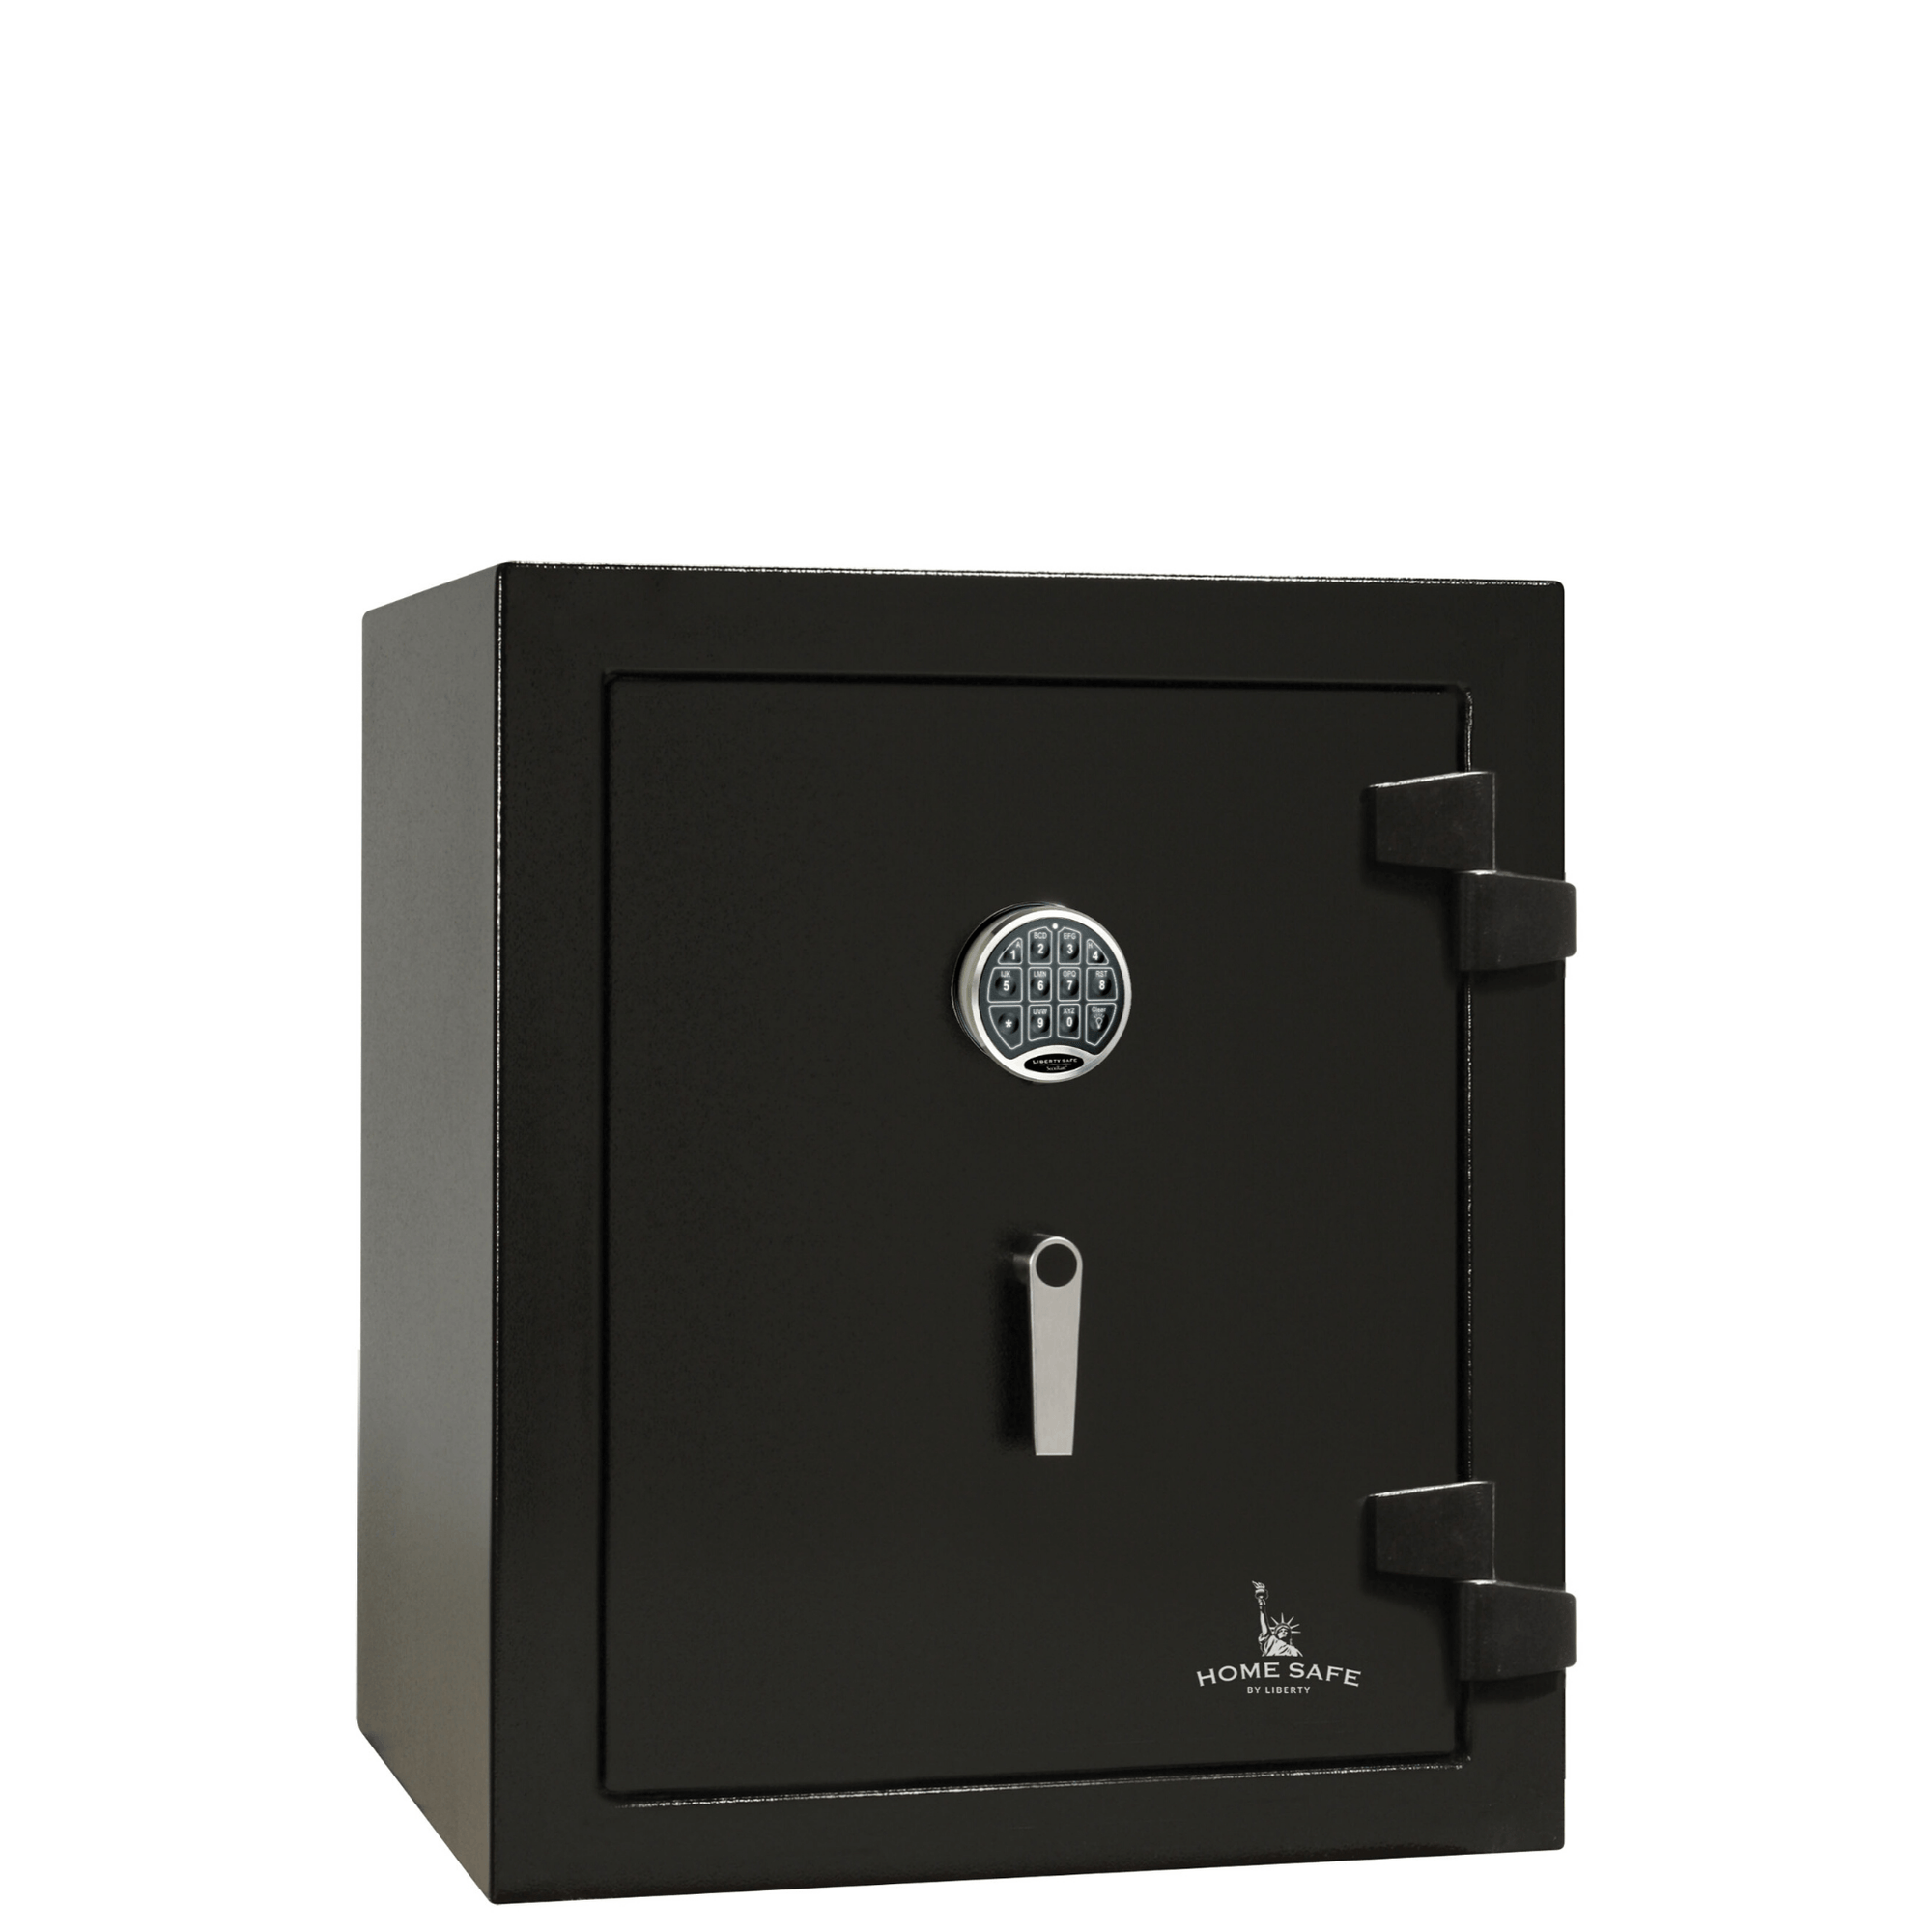 "Home Safe | 08 | 60 Minute Fire Protection | Black | Electronic Lock | Dimensions: 30""(H) x 24.25""(W) x 22""(D)."